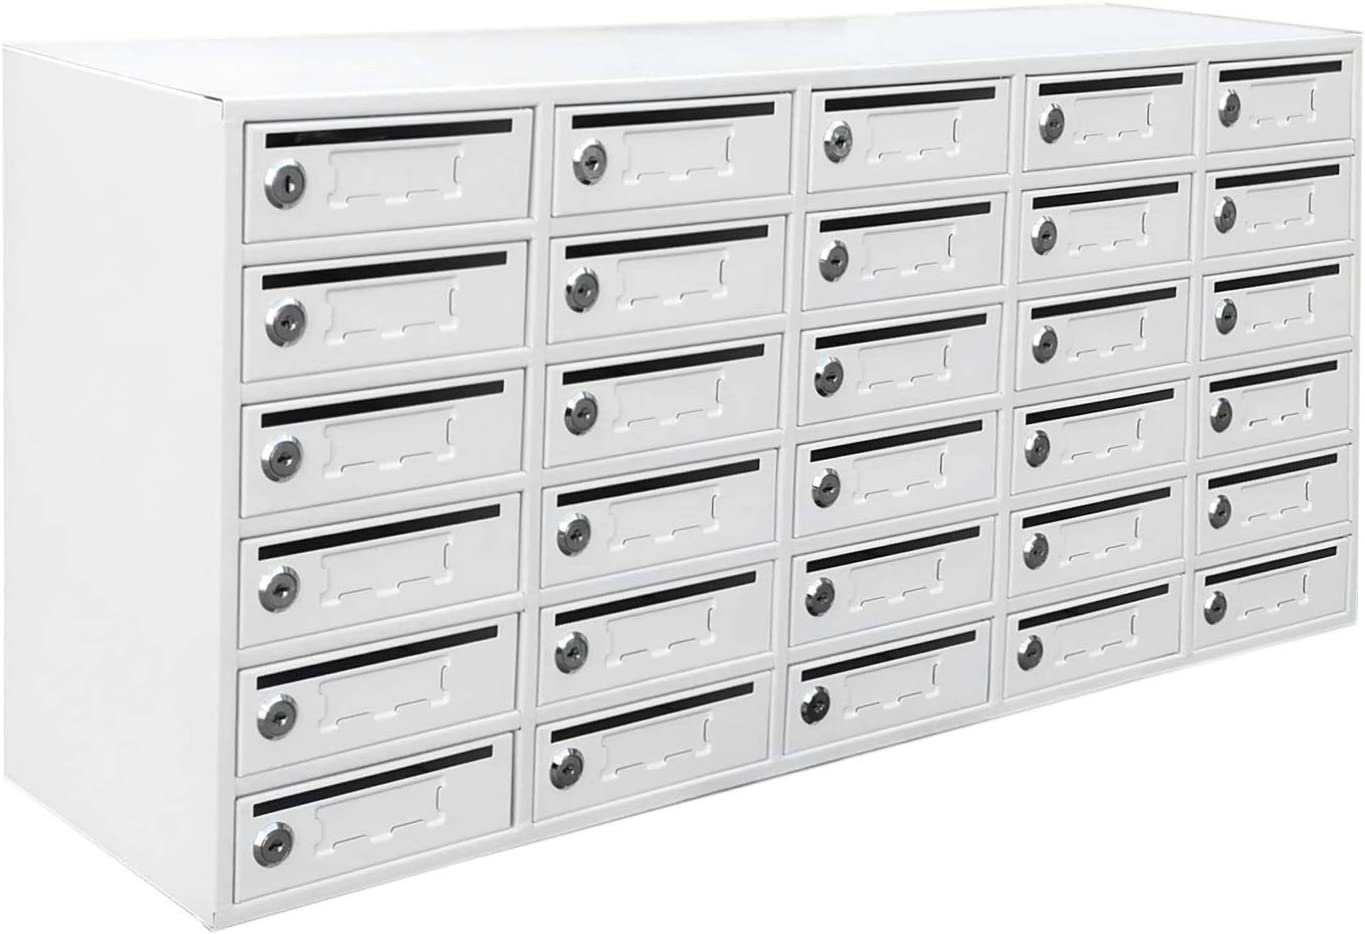 FixtureDisplays 30-Slot Cell Phone Station Sales for sale Superior with Lockers Storage